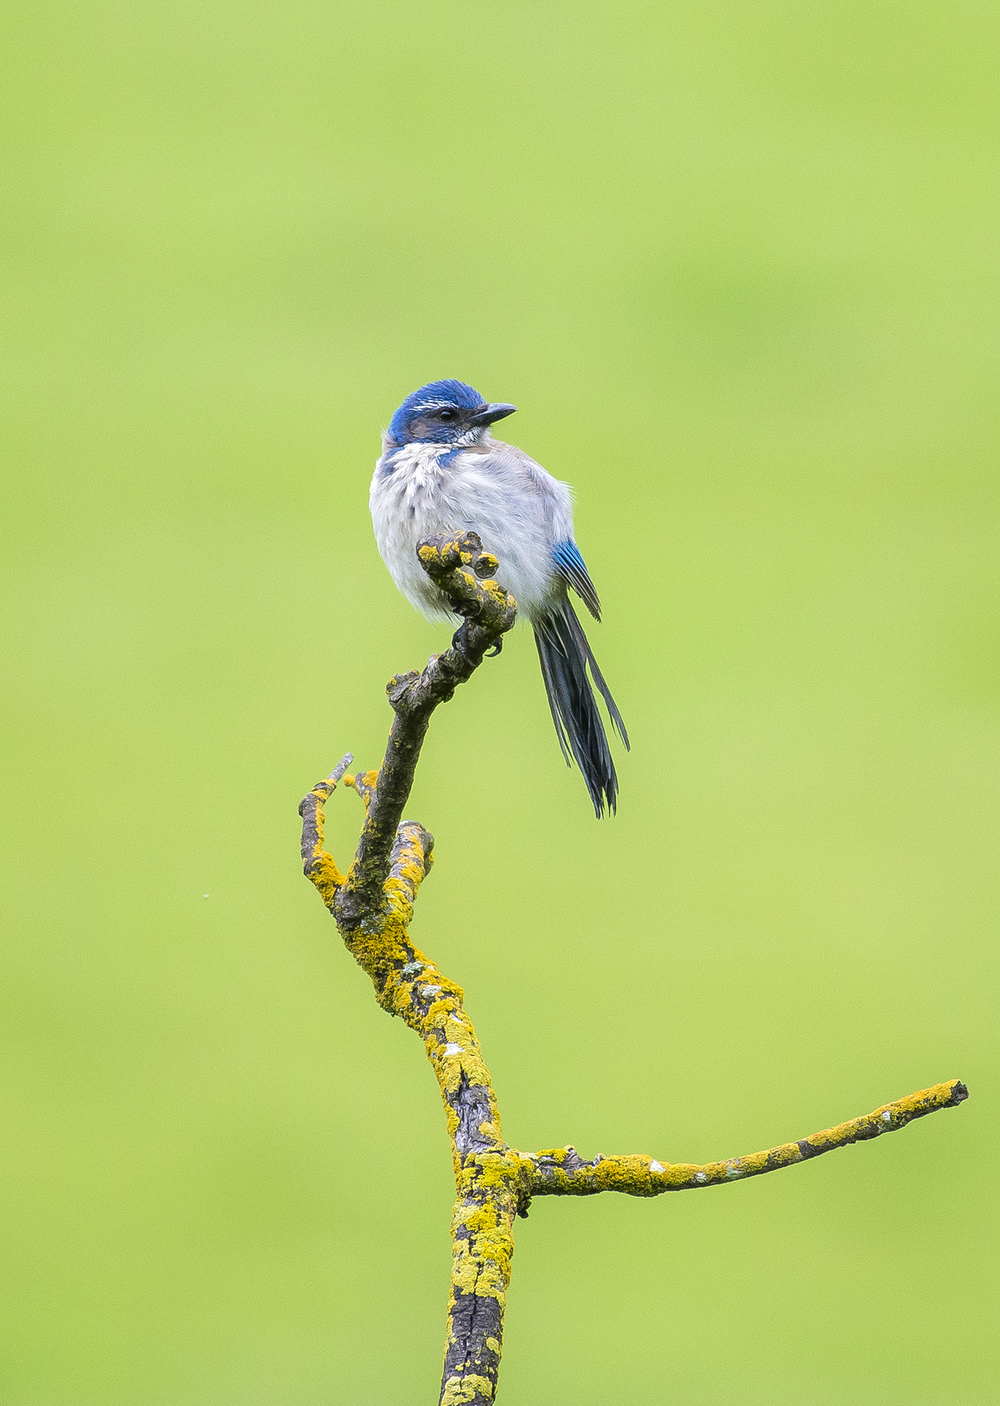 A young scrub jay ( Aphelocoma californica ) perches on a lichen covered branch